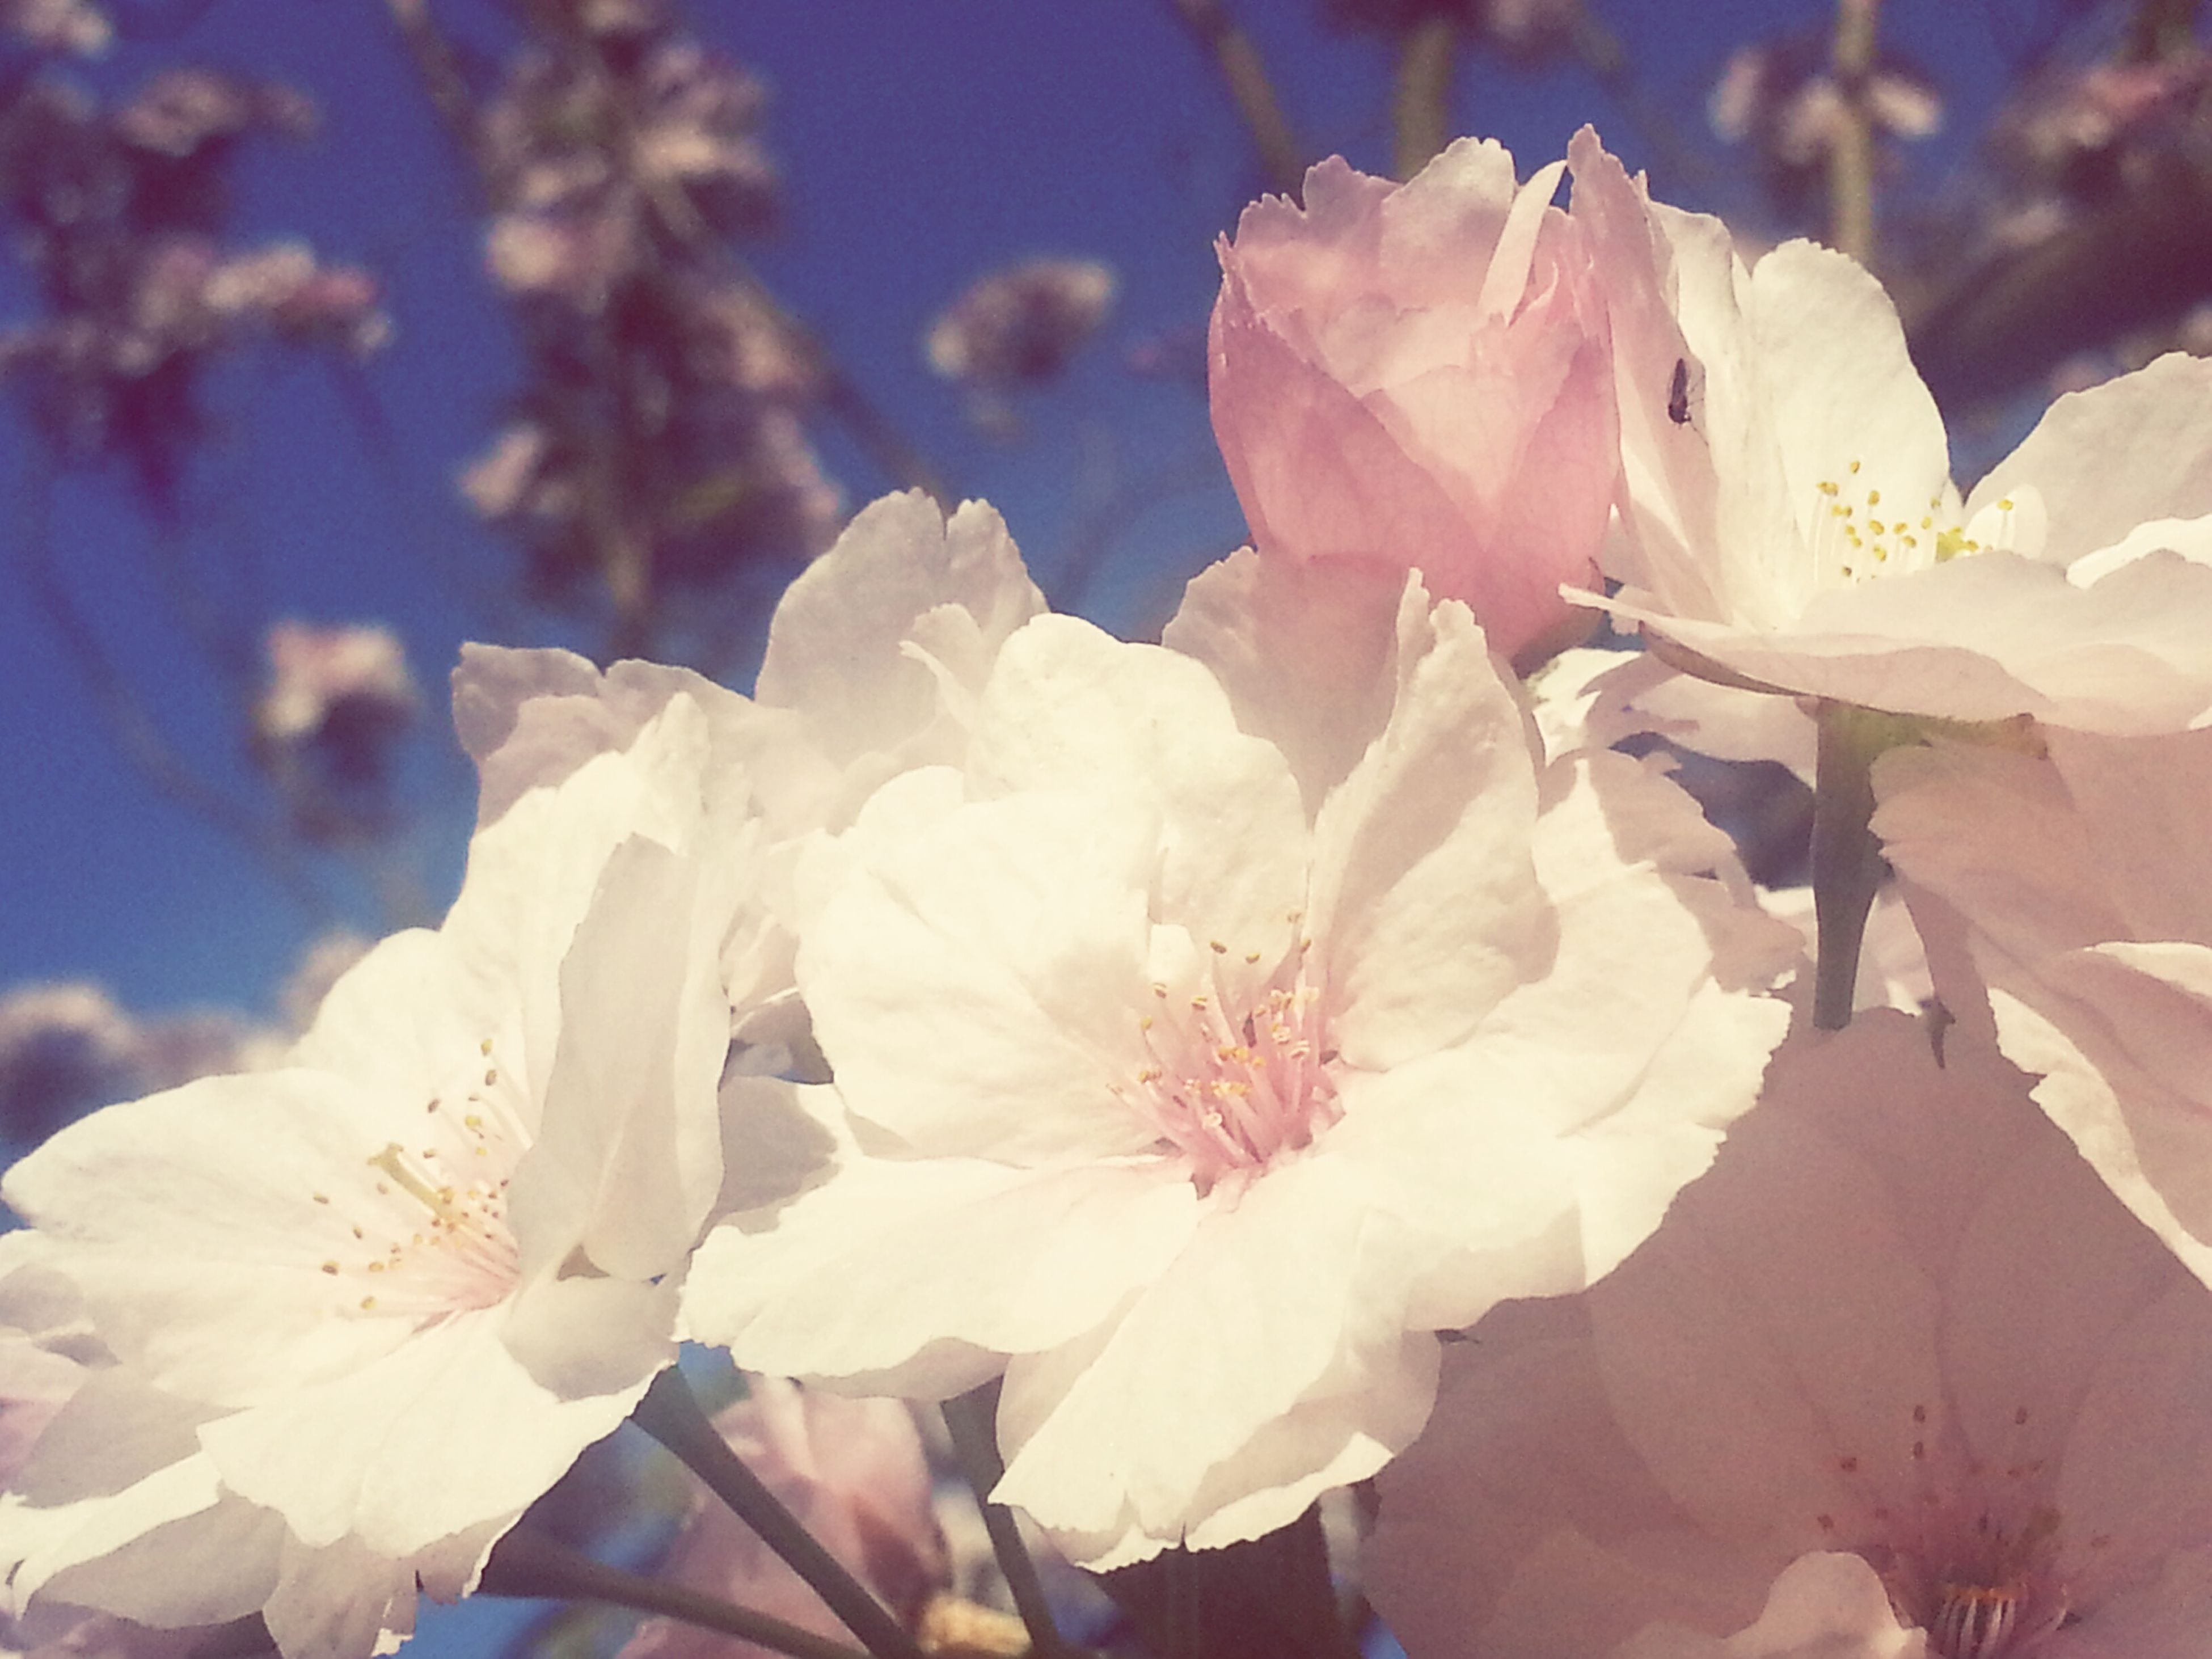 flower, petal, fragility, freshness, flower head, beauty in nature, close-up, growth, blooming, nature, white color, focus on foreground, in bloom, pink color, blossom, outdoors, day, stamen, no people, pollen